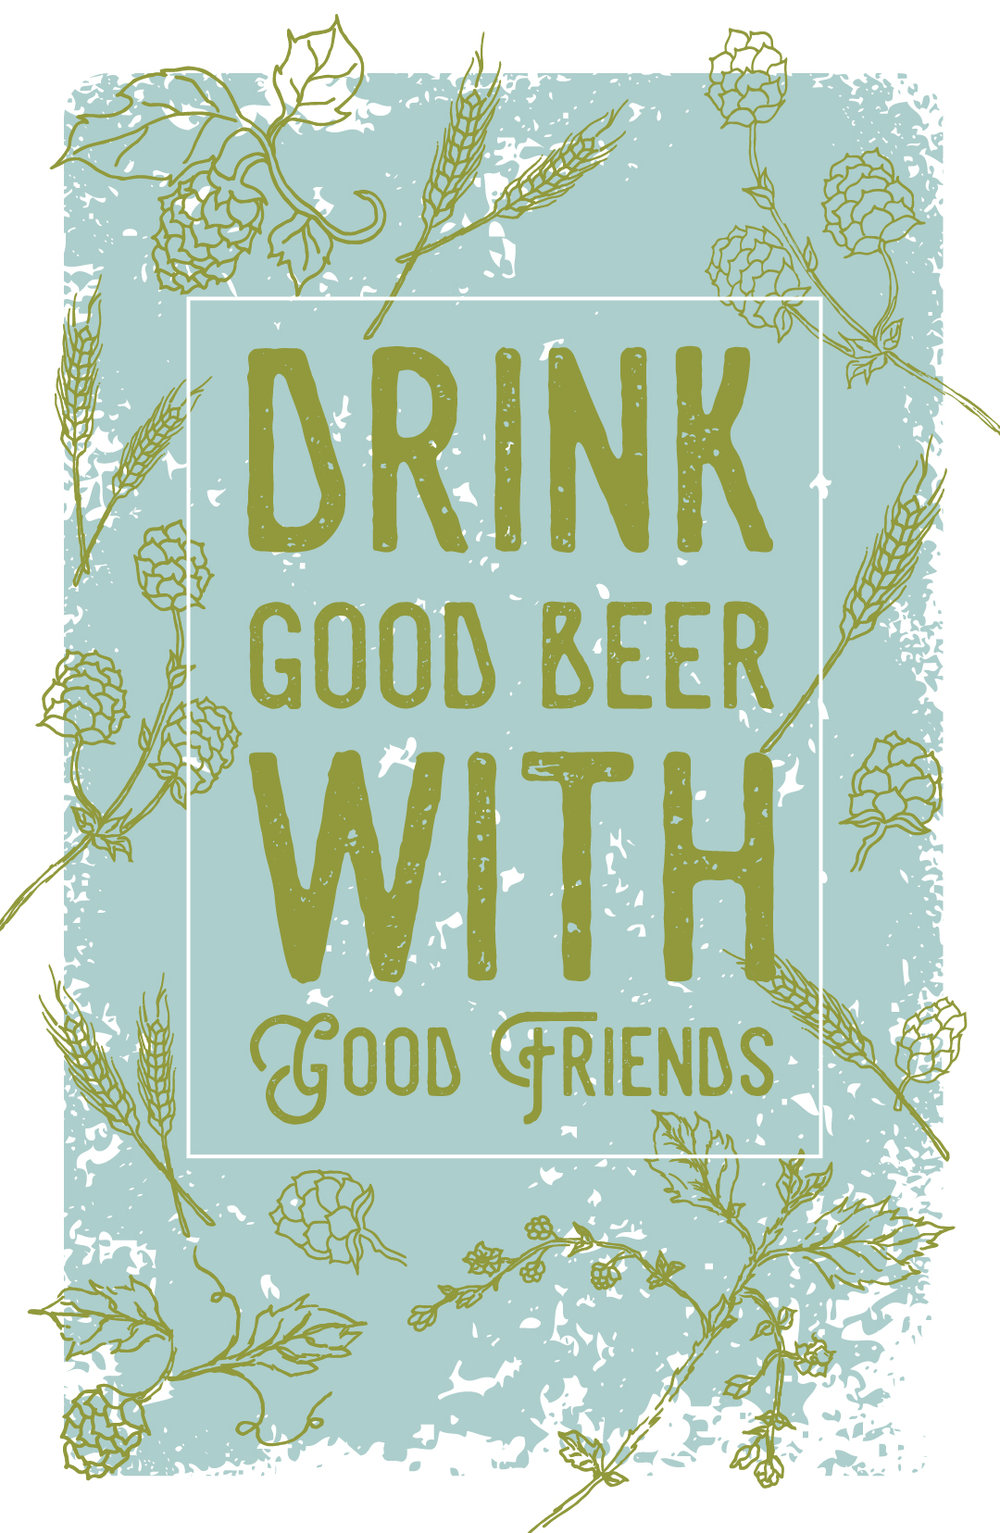 Craft+Beer+Poster-02.jpg